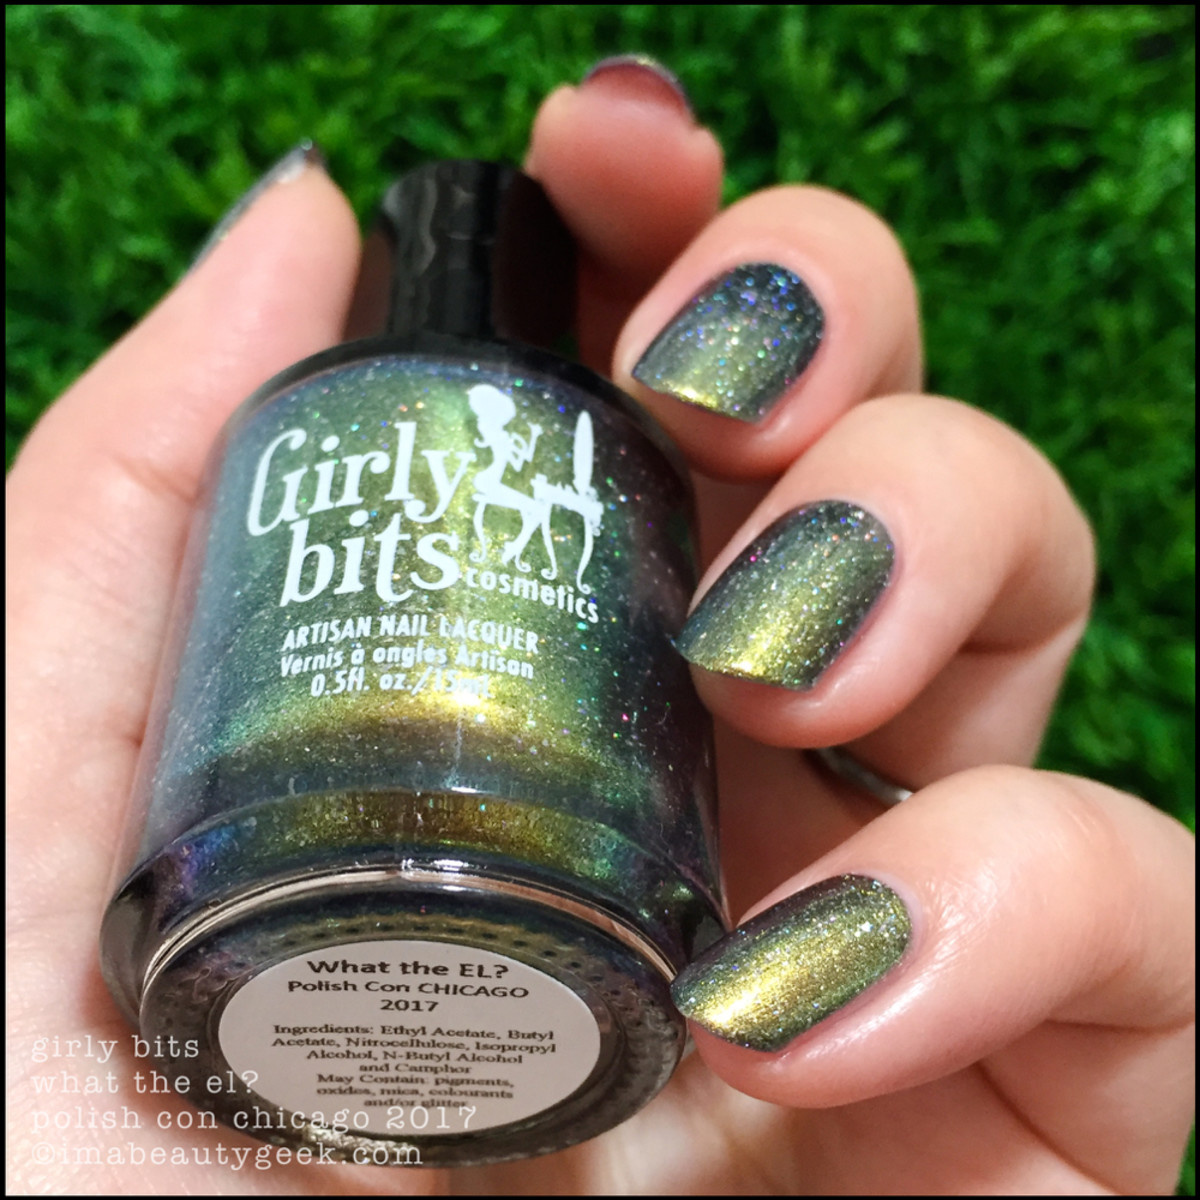 Girly Bits What the El? 3 _ Girly Bits Polish Con Chicago 2017